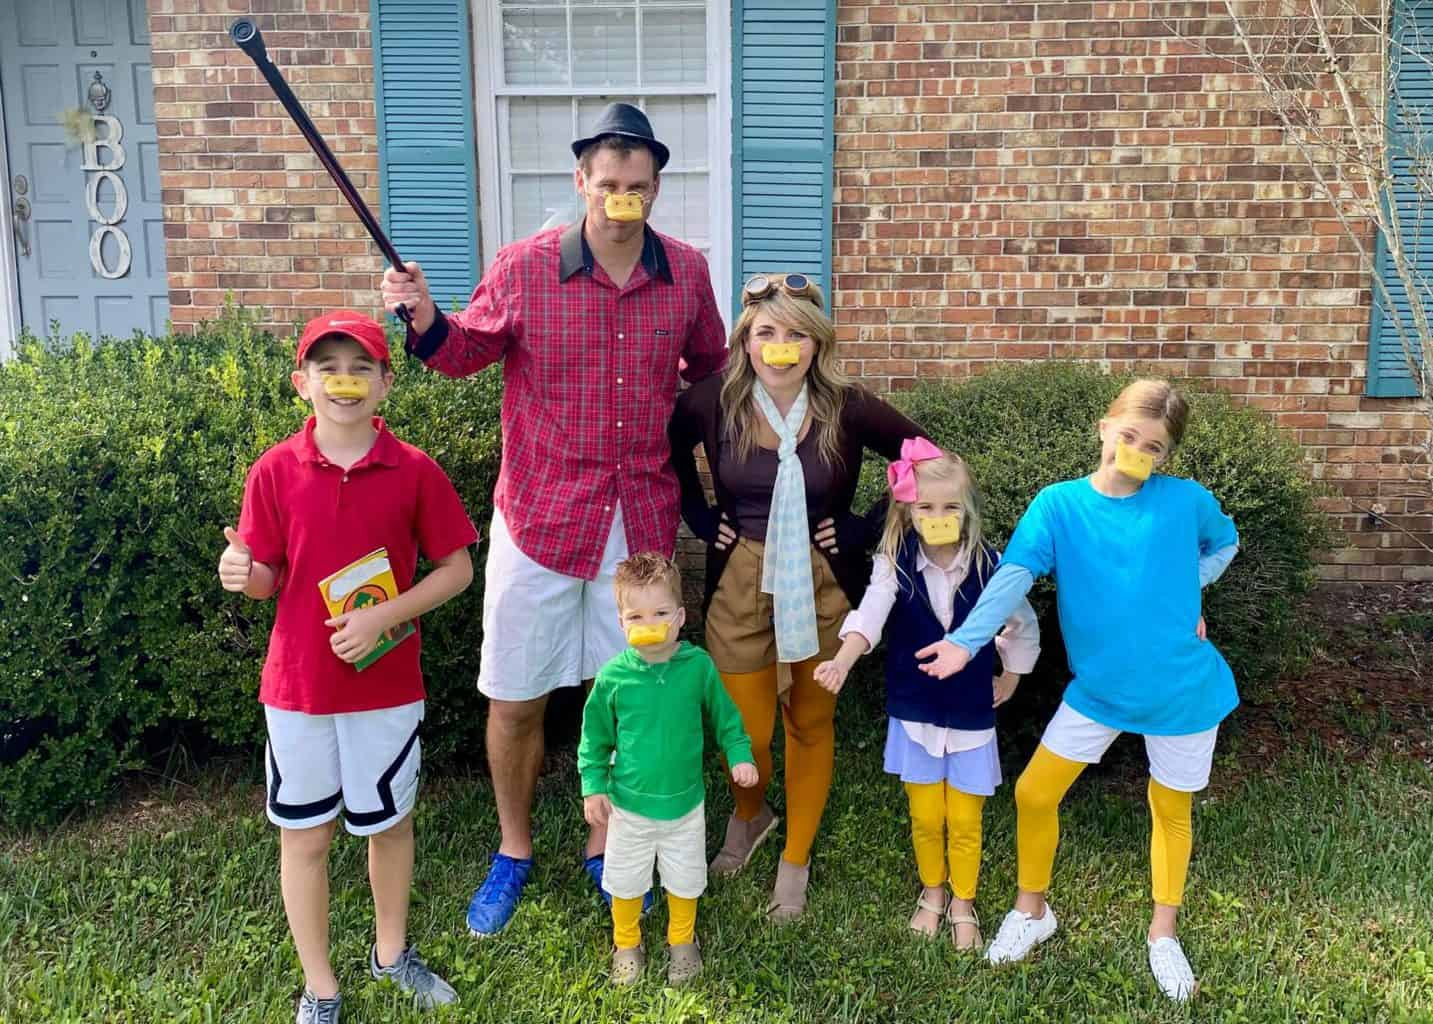 Ducktales Family Halloween Costumes